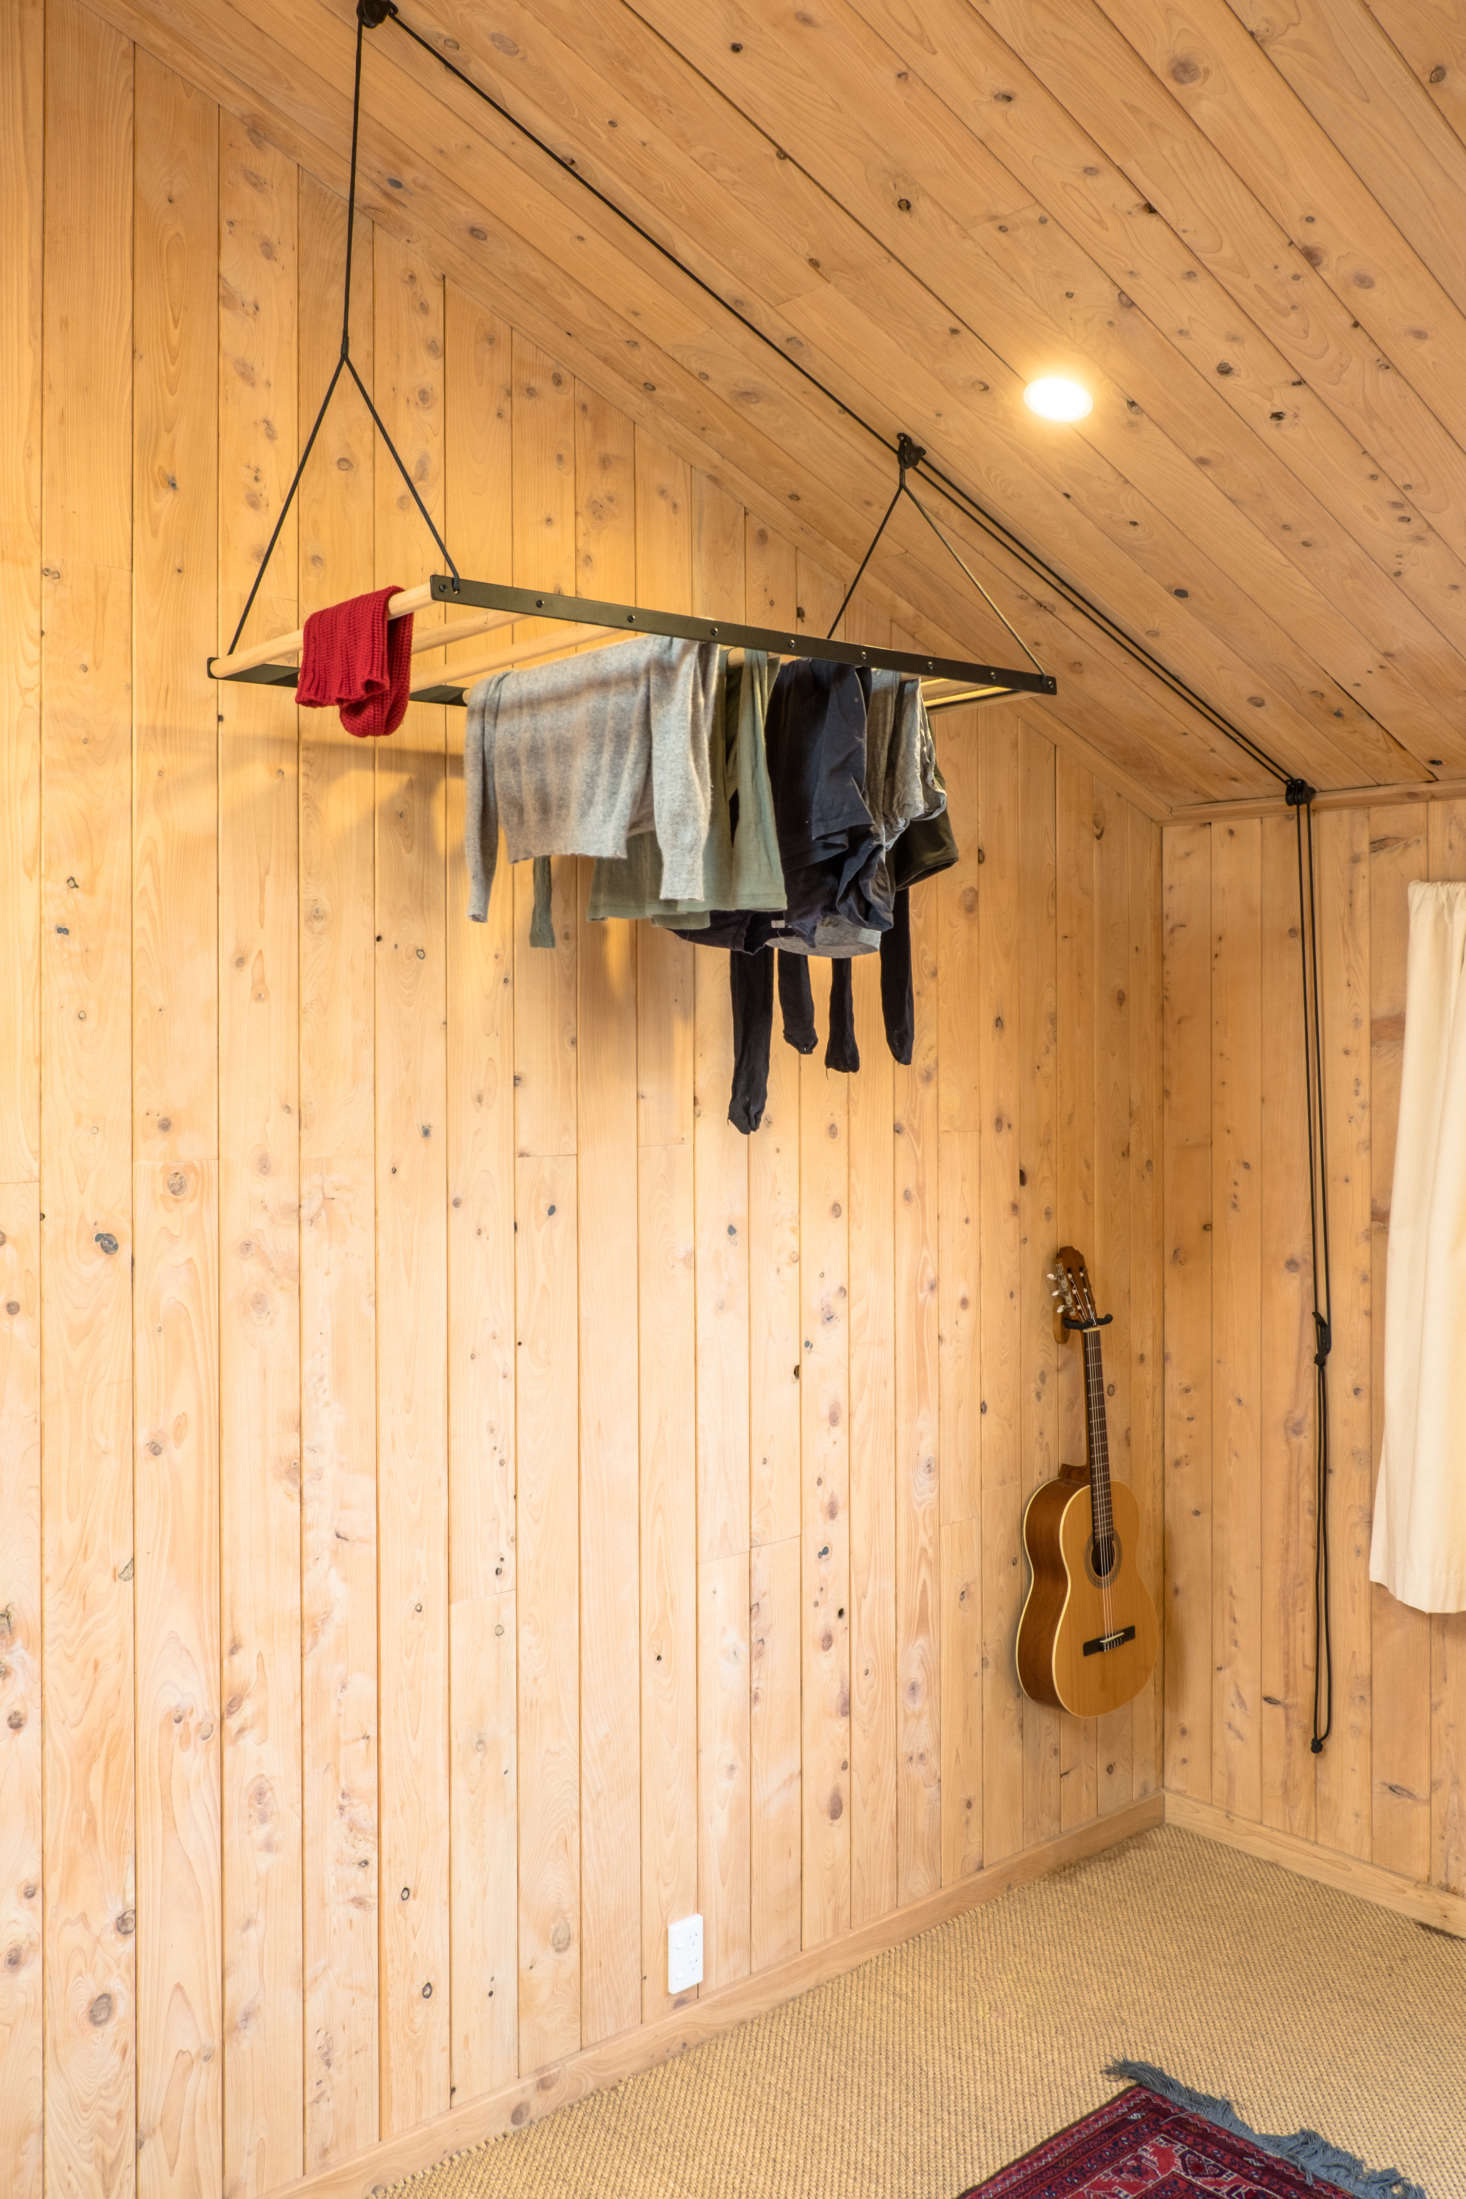 A George & Willy pulley system drying rack hangs in a corner of the master bedroom where it takes up little space and allows clothes to dry in the warmest air. Read about the design in Object of Desire: A Hanging Laundry Rack.